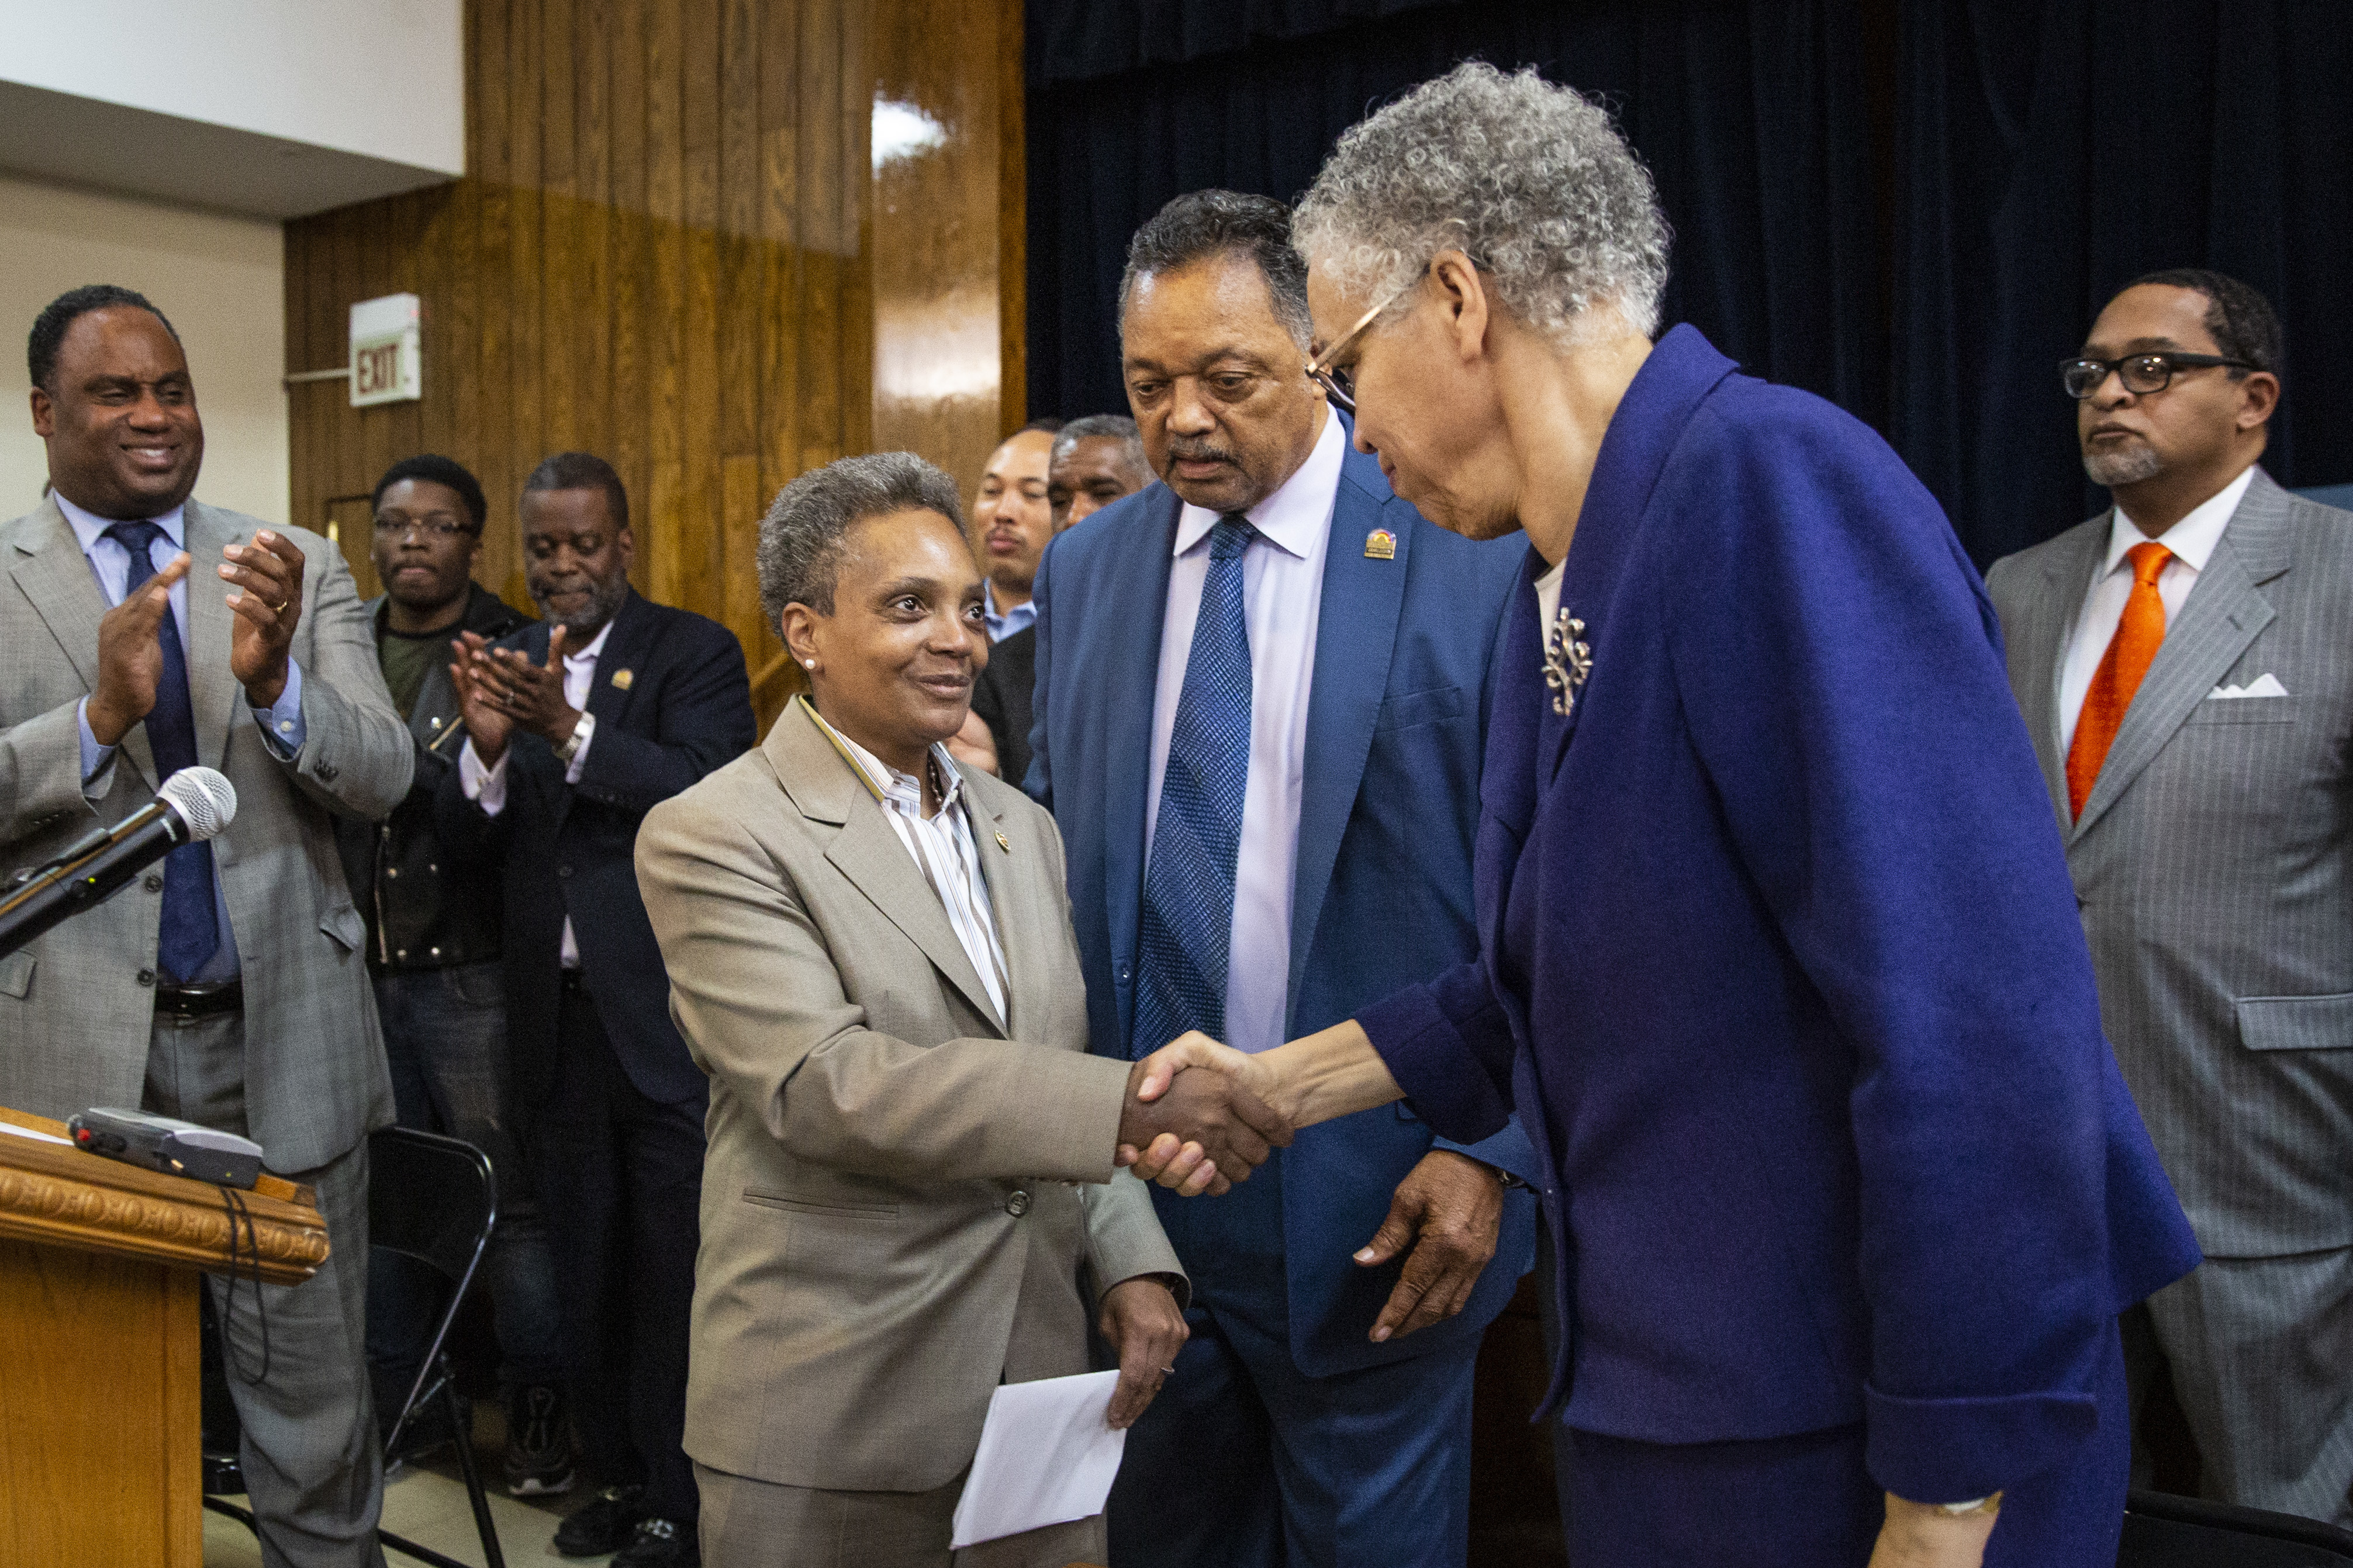 Mayor-elect Lori Lightfoot (left) shakes hands with former mayoral candidate Cook County Board President Toni Preckwinkle as Rev. Jesse Jackson looks on during a press conference at Rainbow PUSH on the Wednesday morning after Lightfoot's victory.